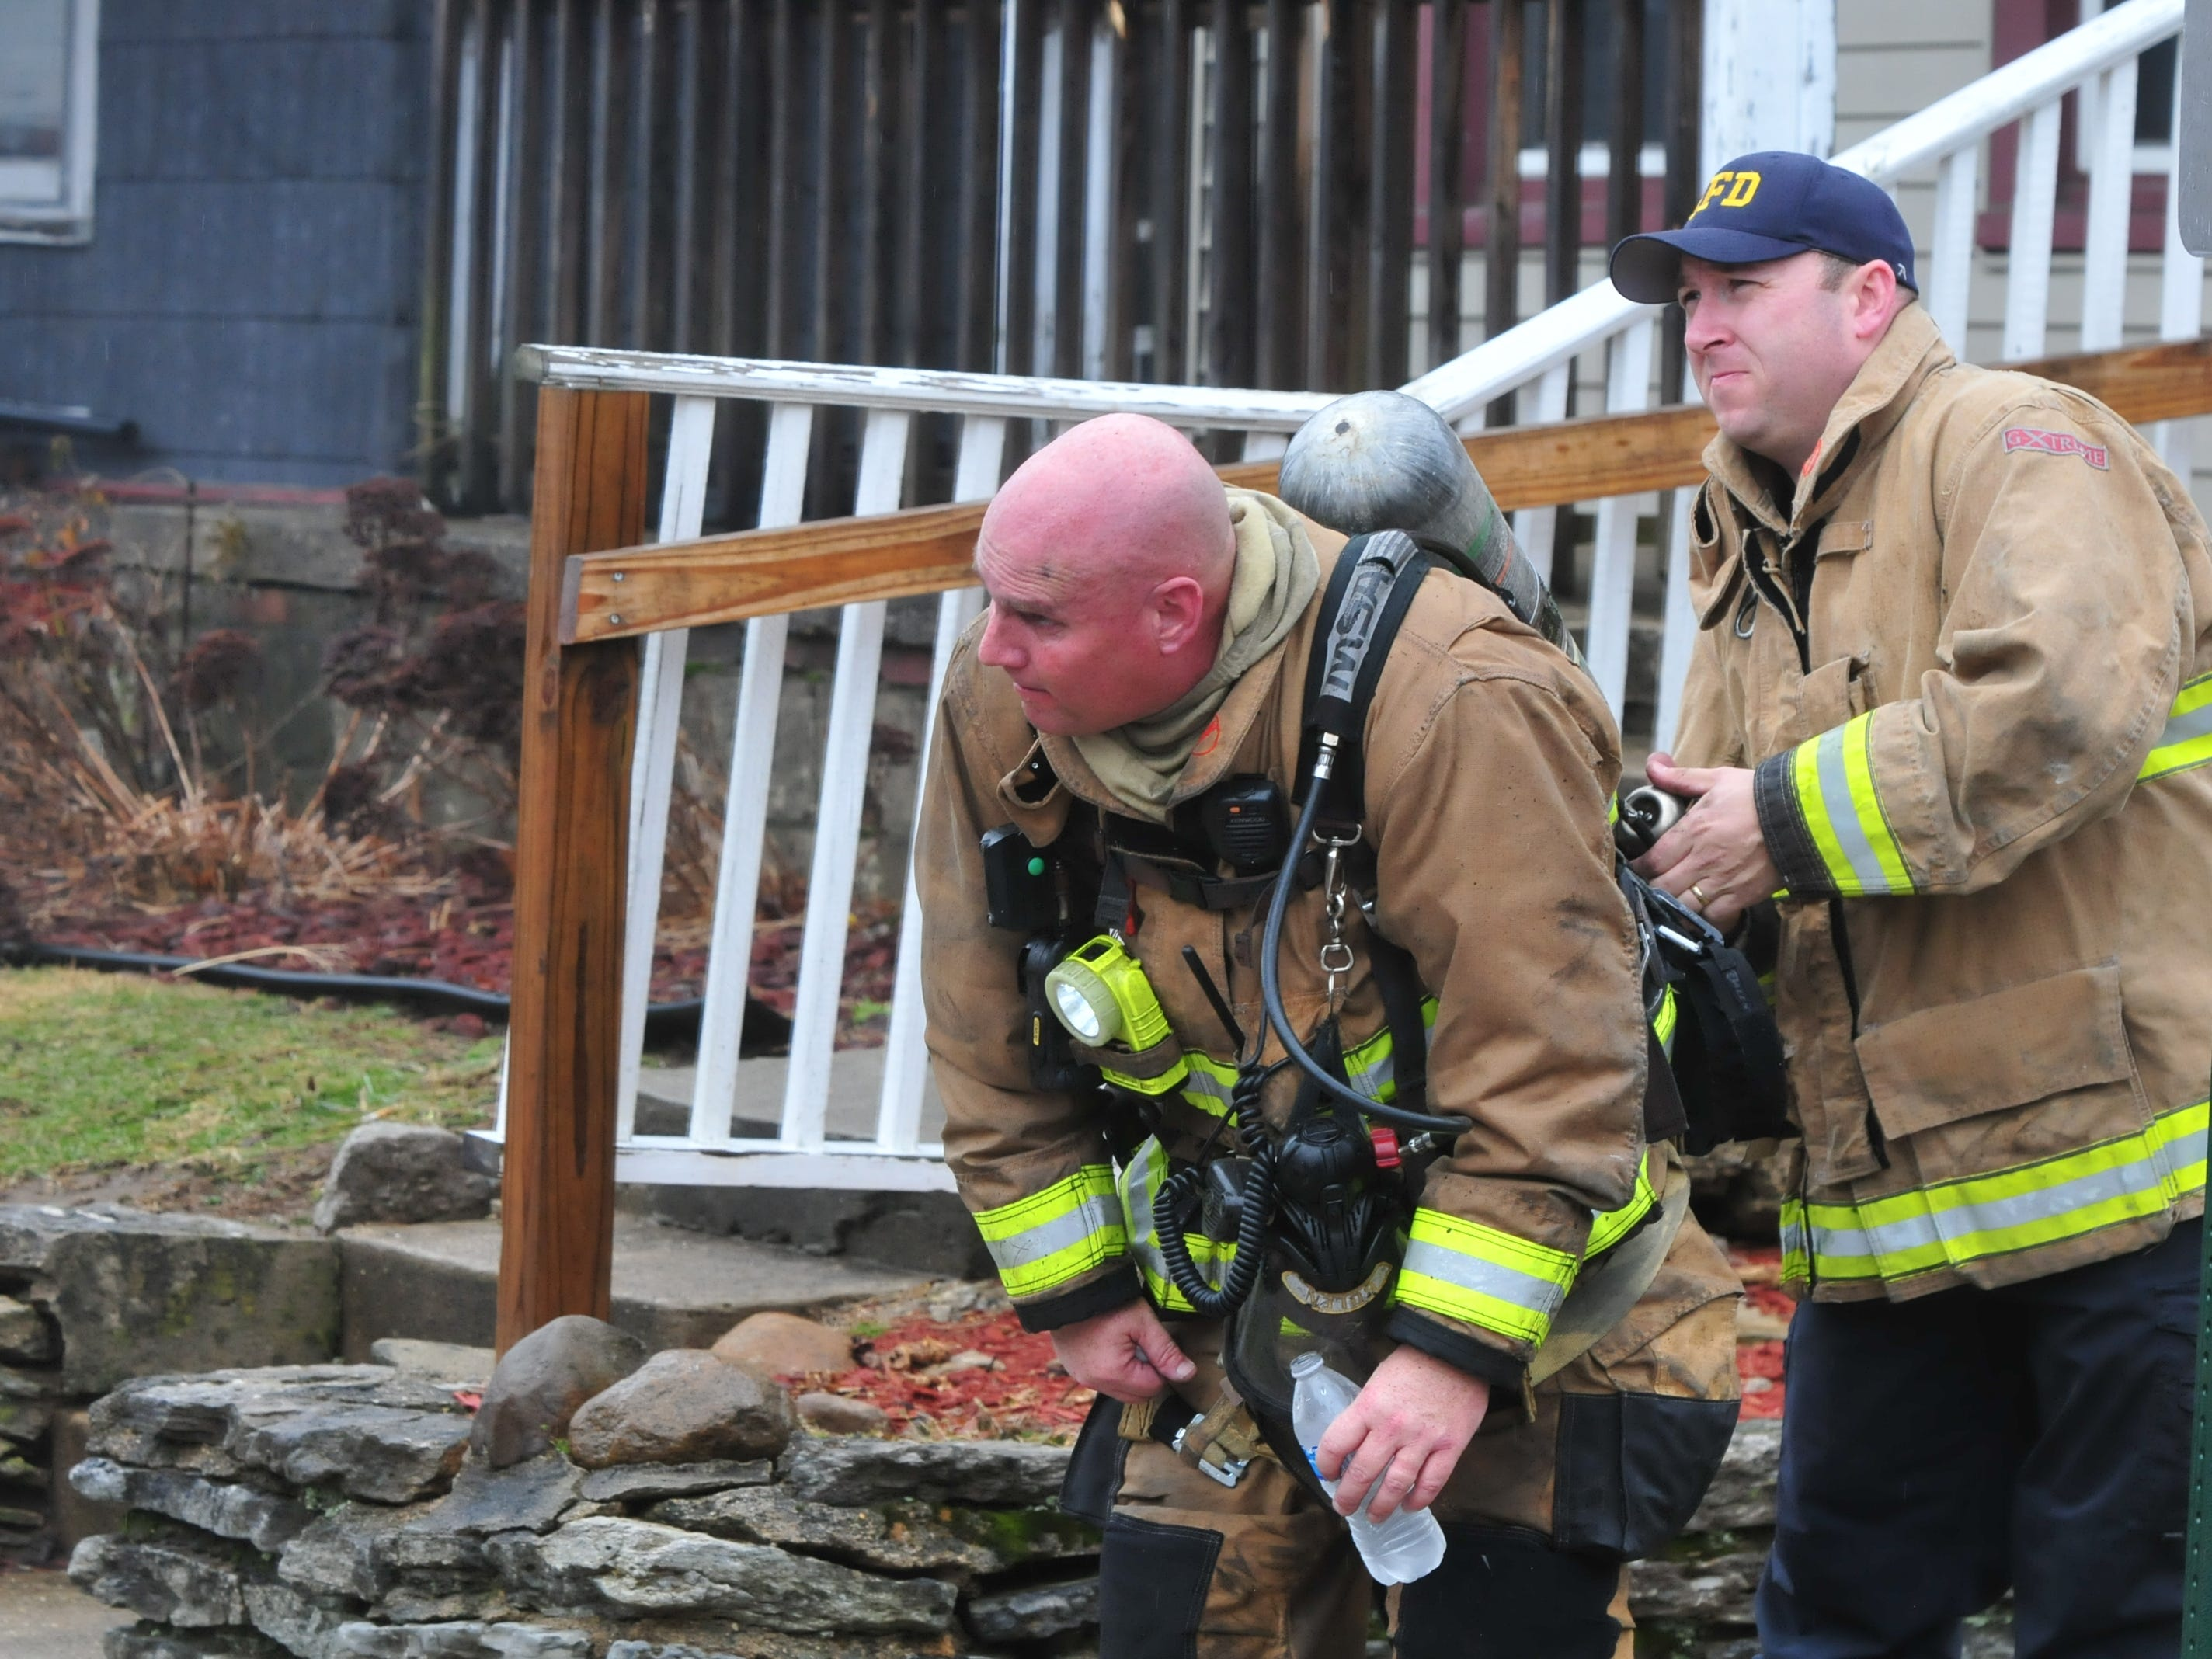 Chief of Fire Prevention Mike Davis helps change an oxygen tank Wednesday during a fire at 112 N. 18th St.